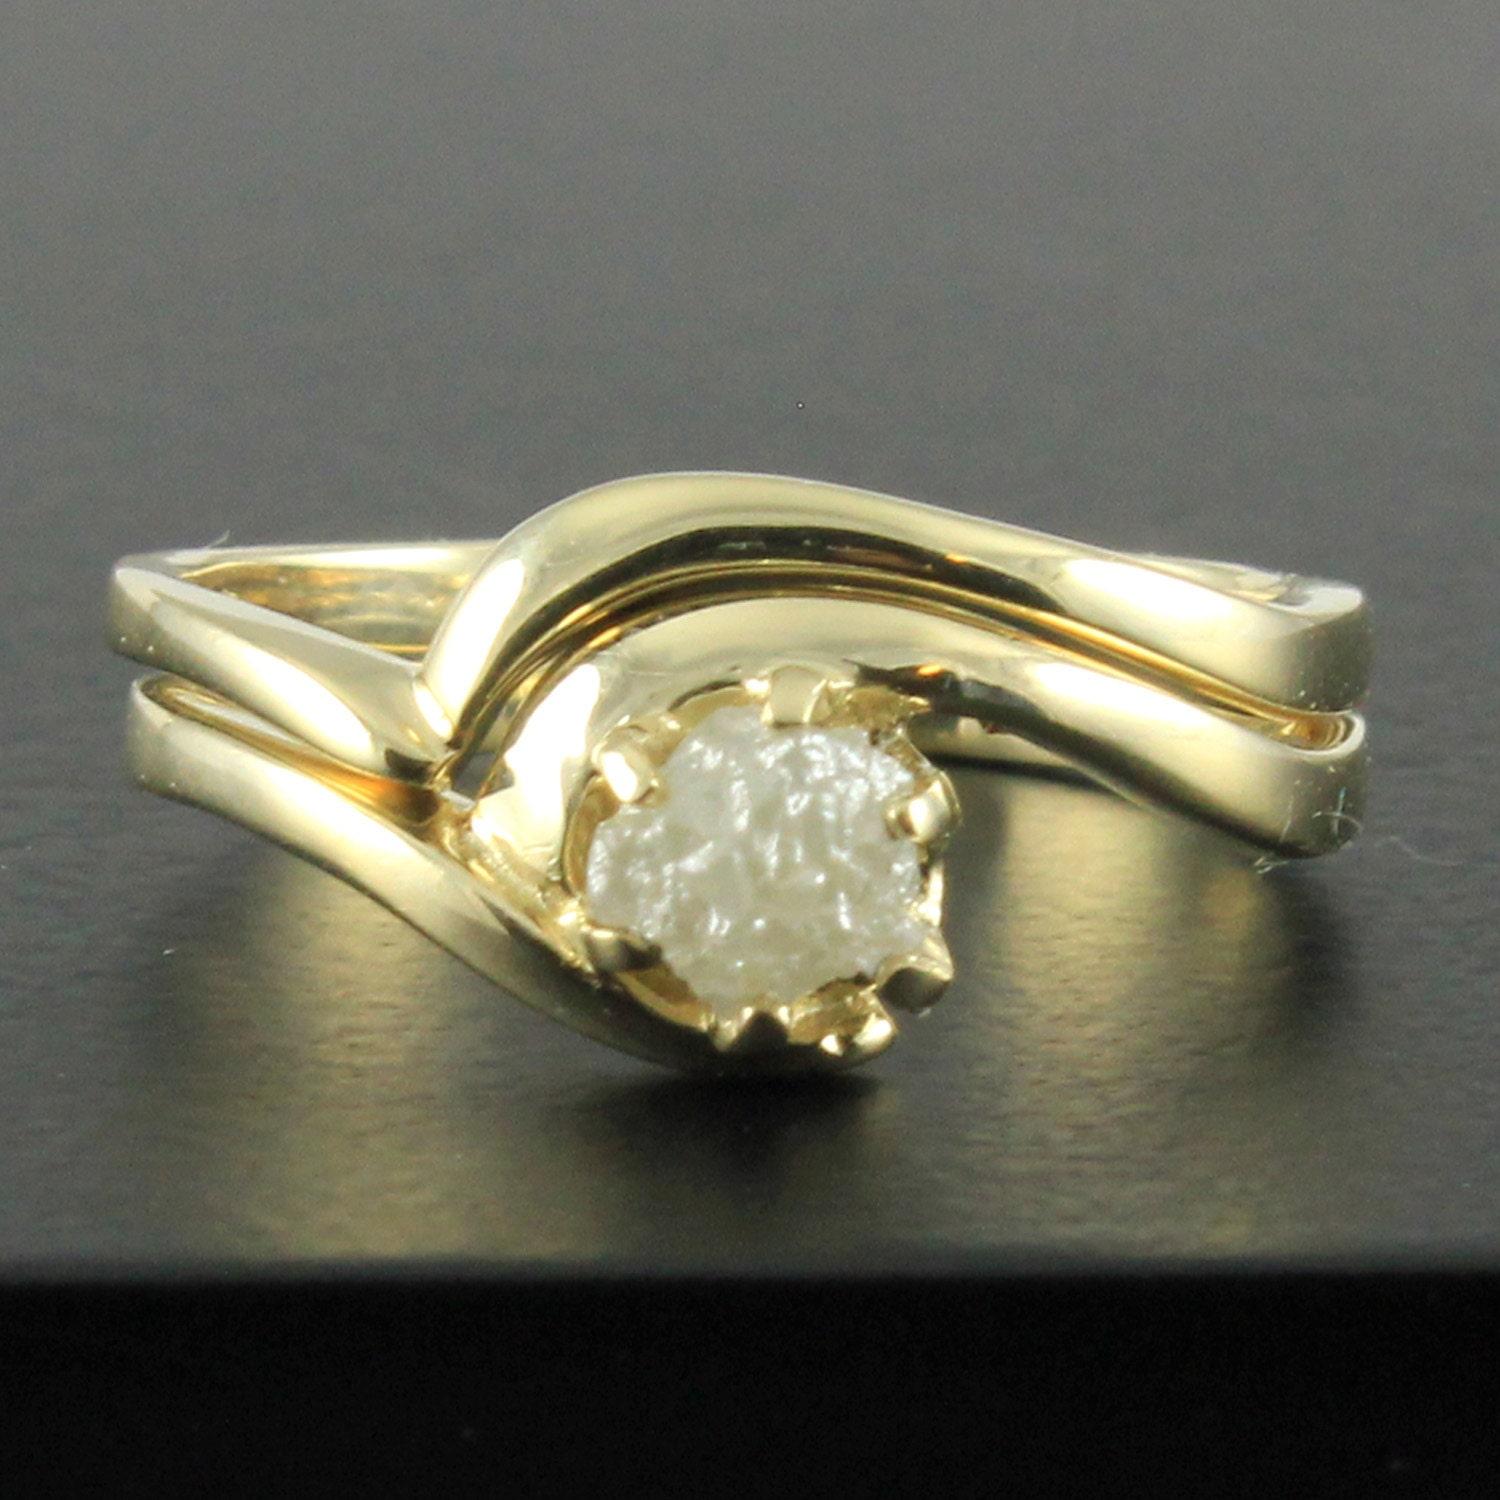 bespoke uncut baroque of and brighton diamonds beauty diamond rough rocks rings jewellery ready natural wedding raw